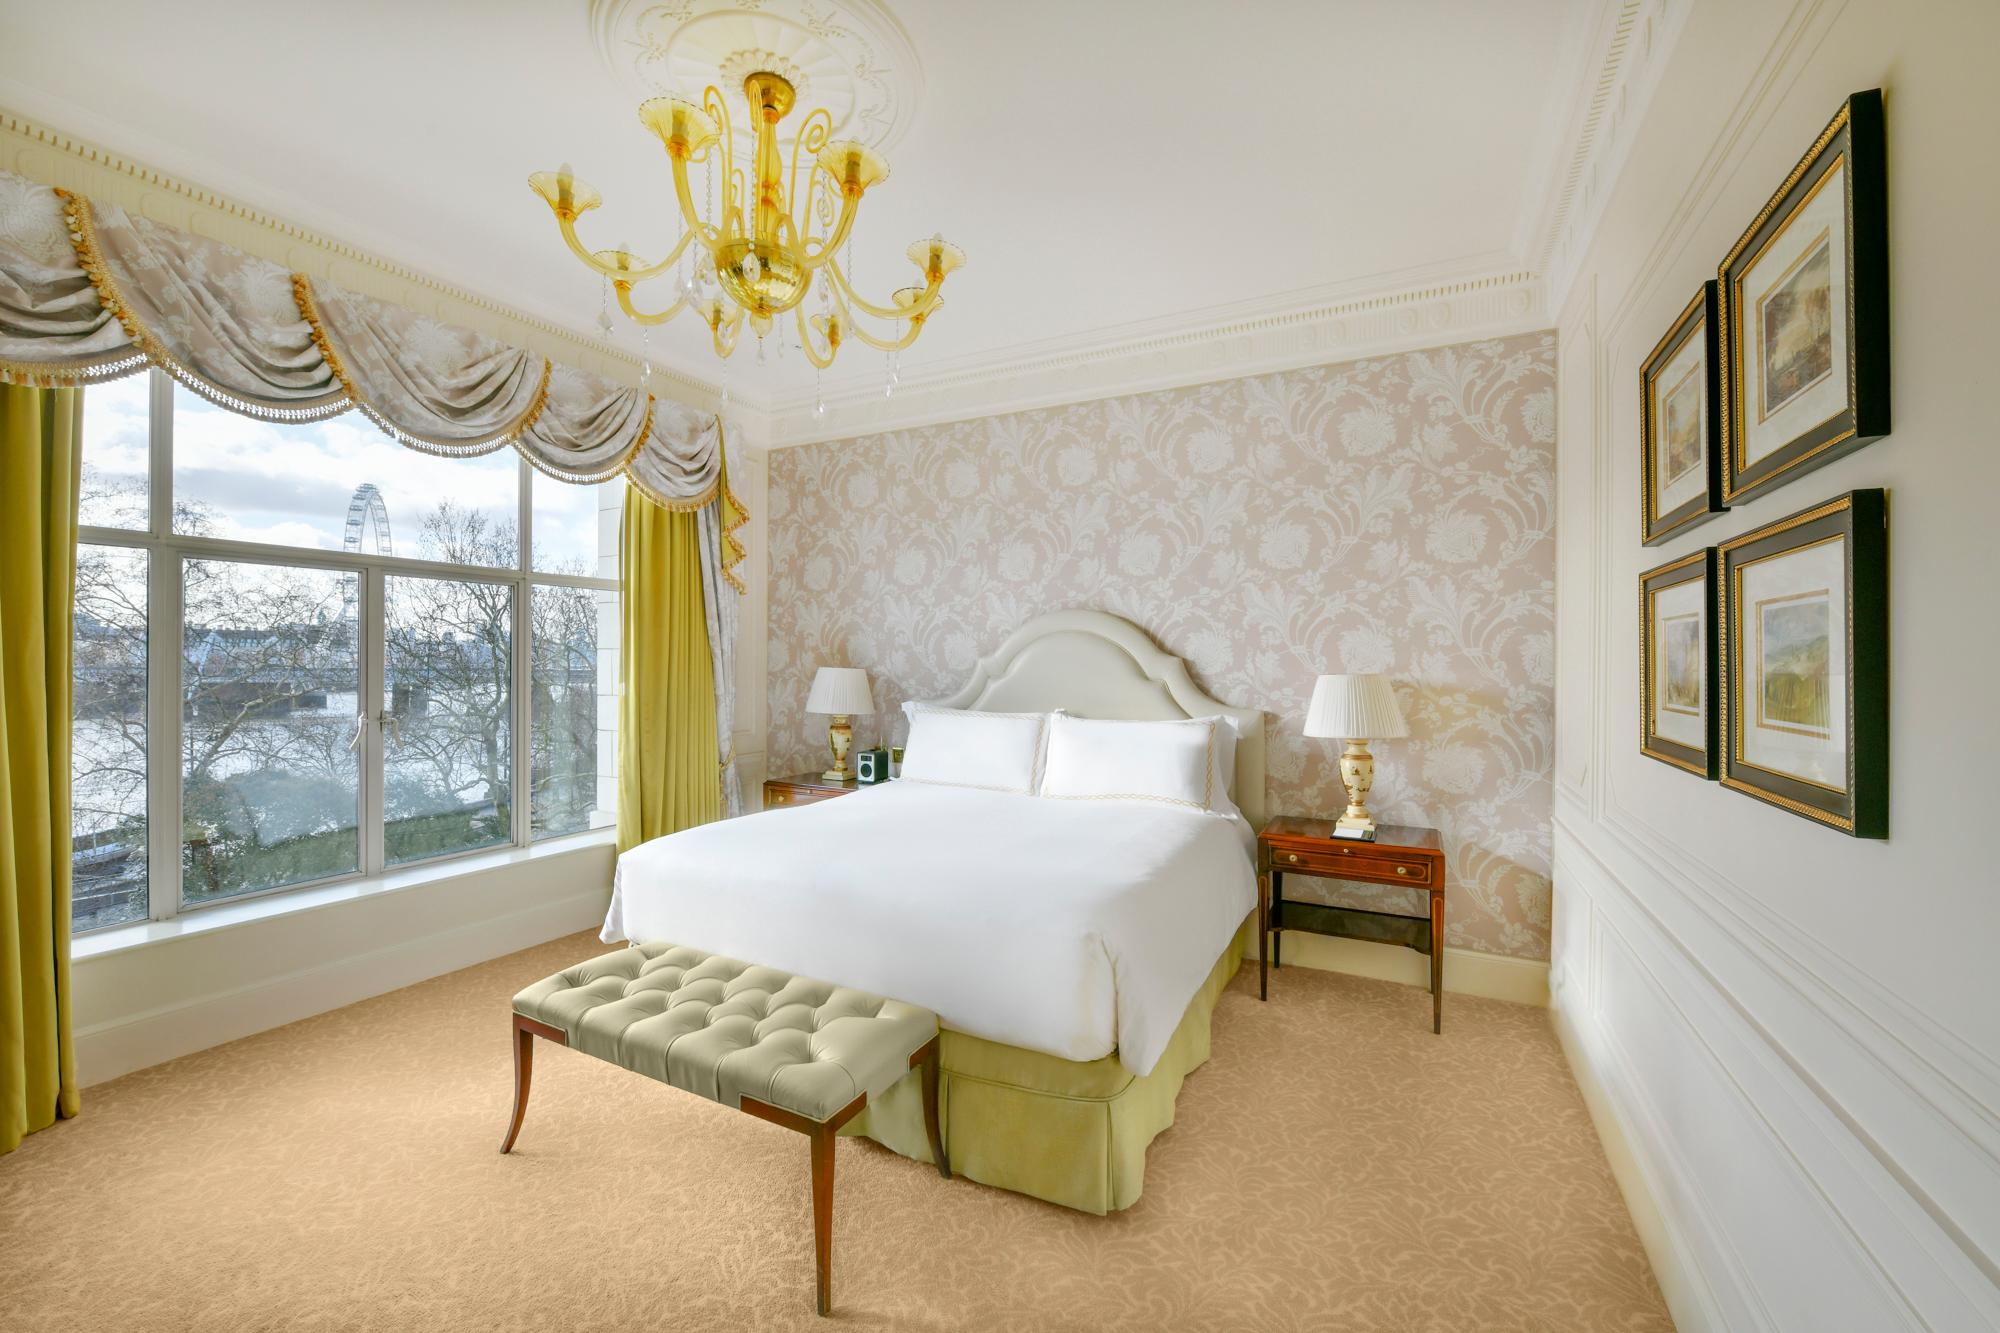 Luxury King Room River View Edwardian